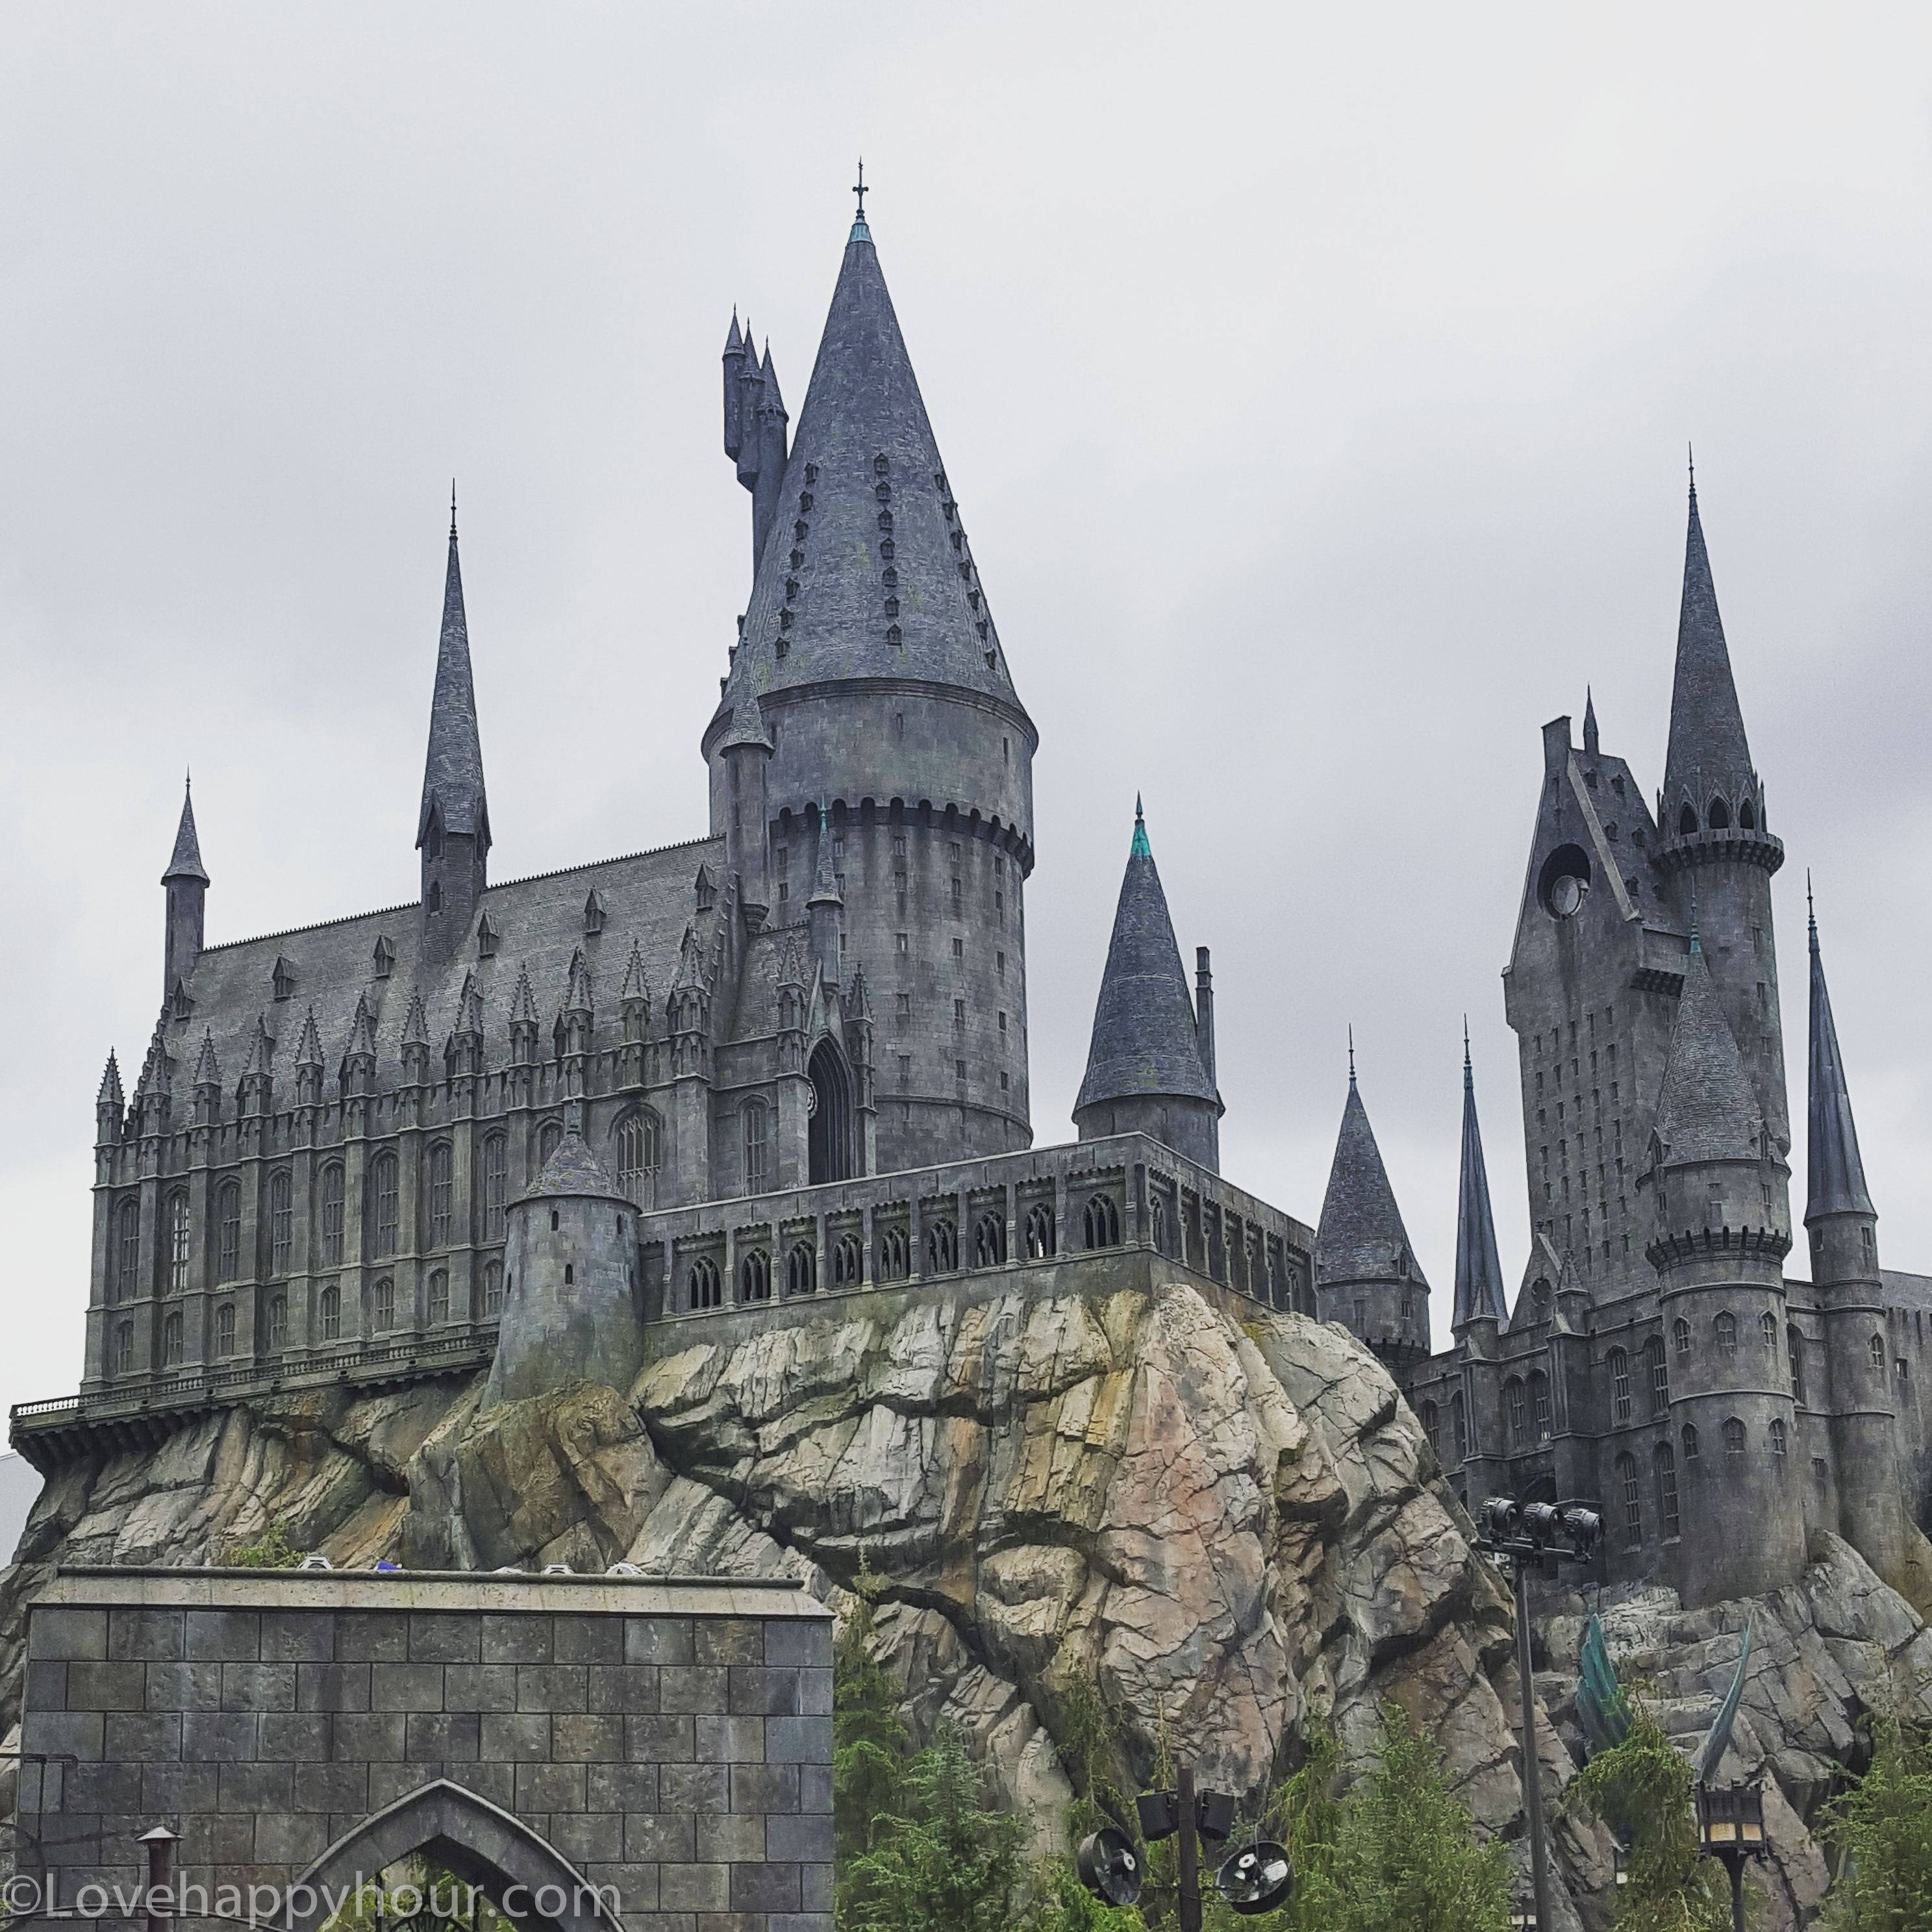 Hogwarts at the Wizarding World of Harry Potter (Universal Studios Hollywood).